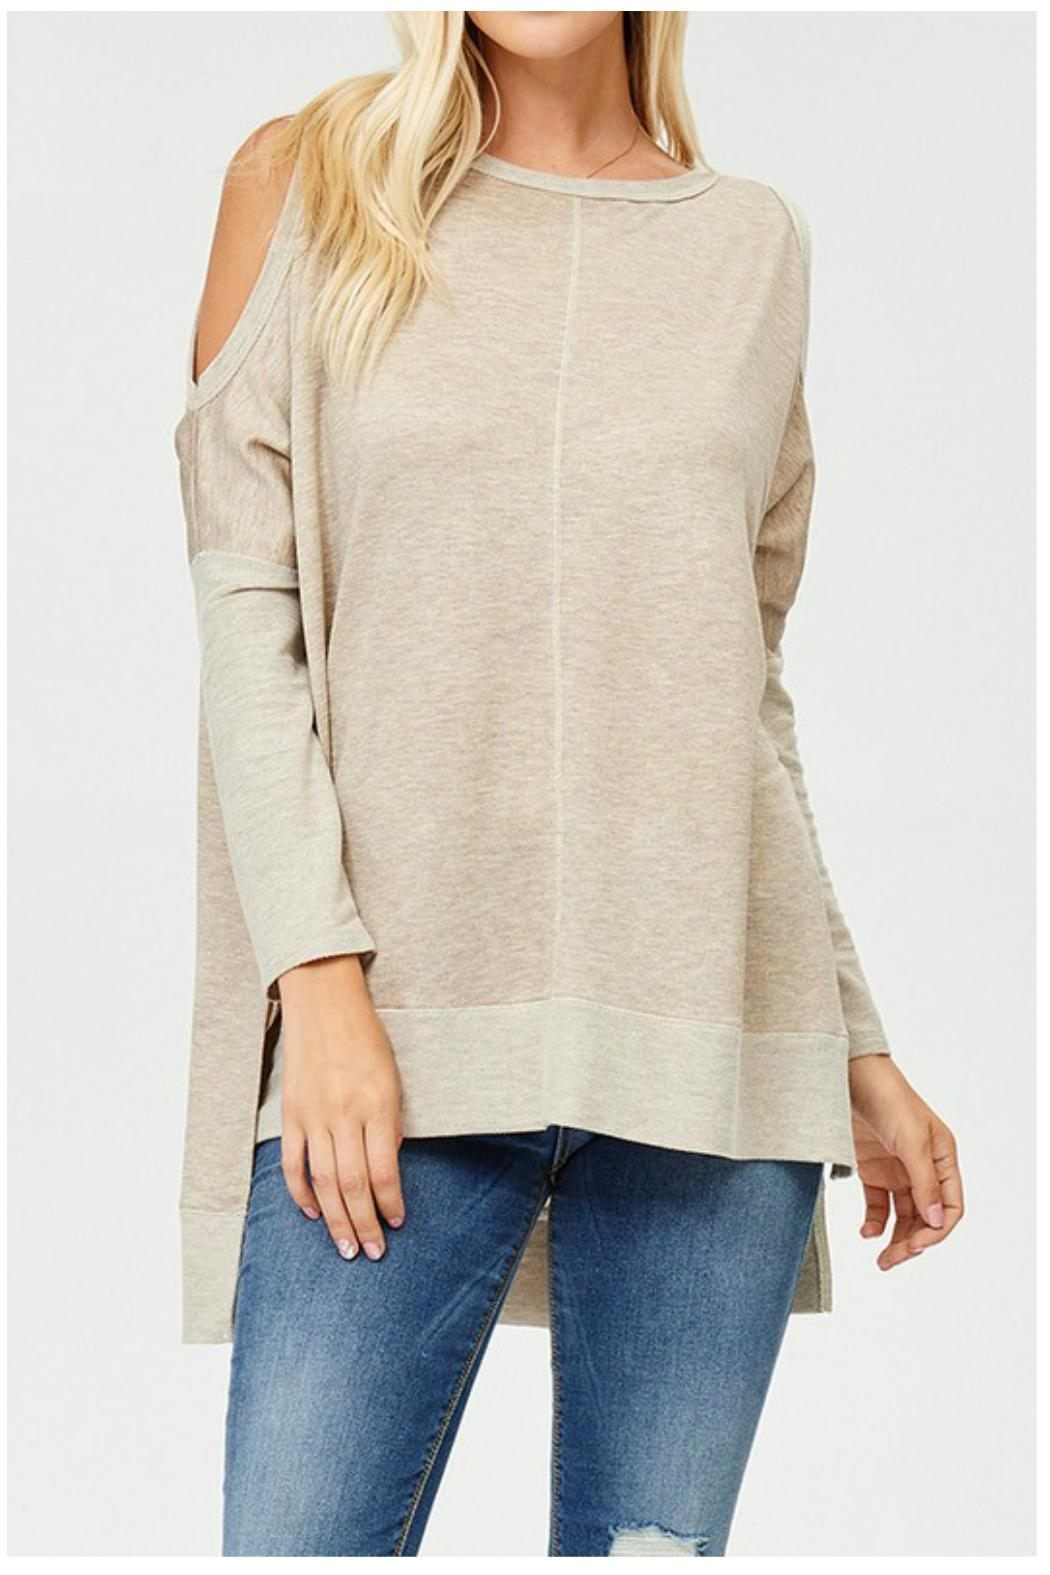 Towne Cold Shoulder Top - Main Image